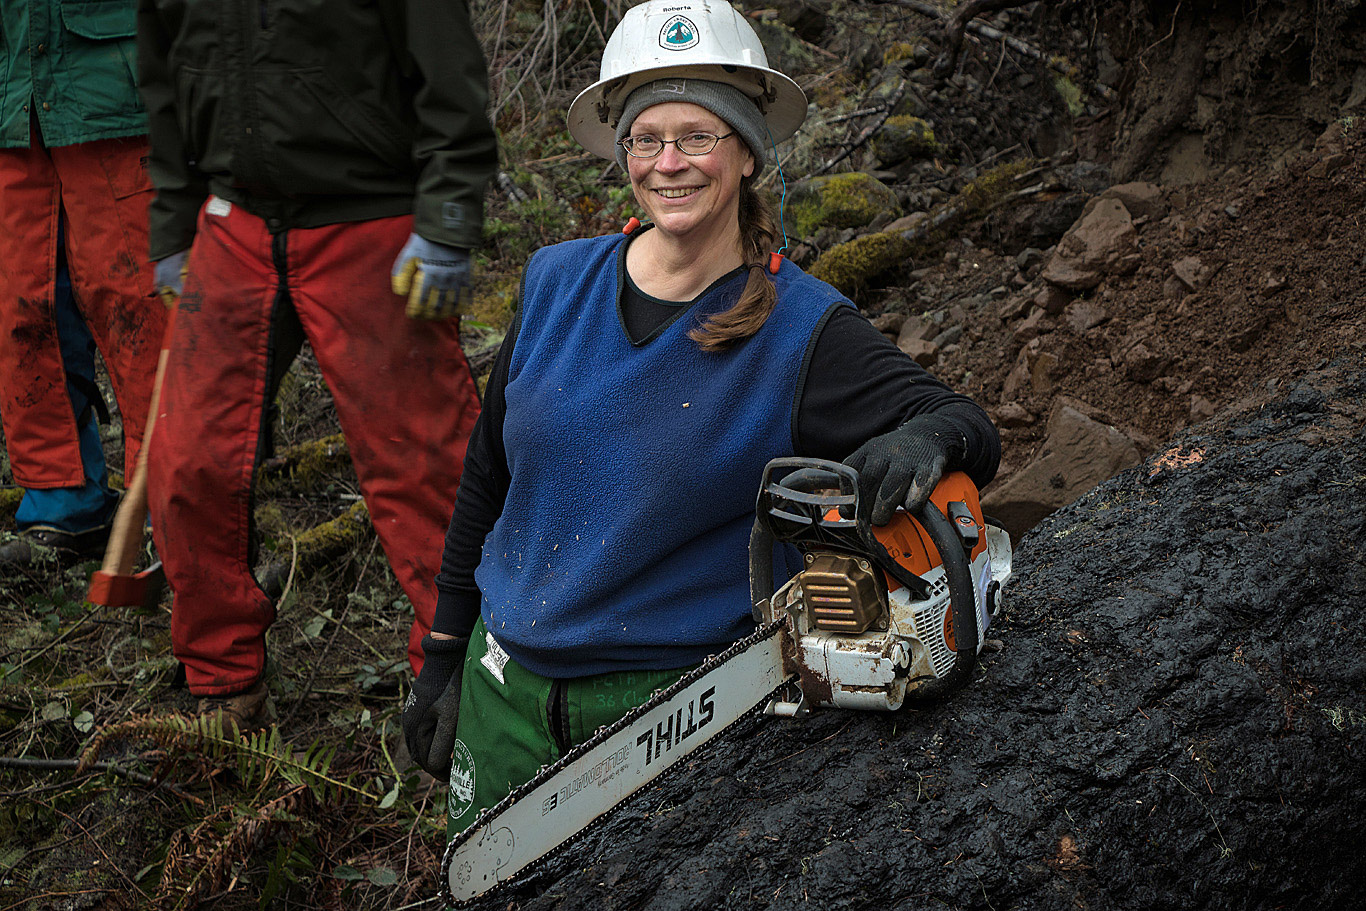 Roberta Cobb helped lead the passionate and skilled volunteers of the PCTA Mt. Hood Chapter to quickly reopen the PCT and other trails. Photo by Terry Hill